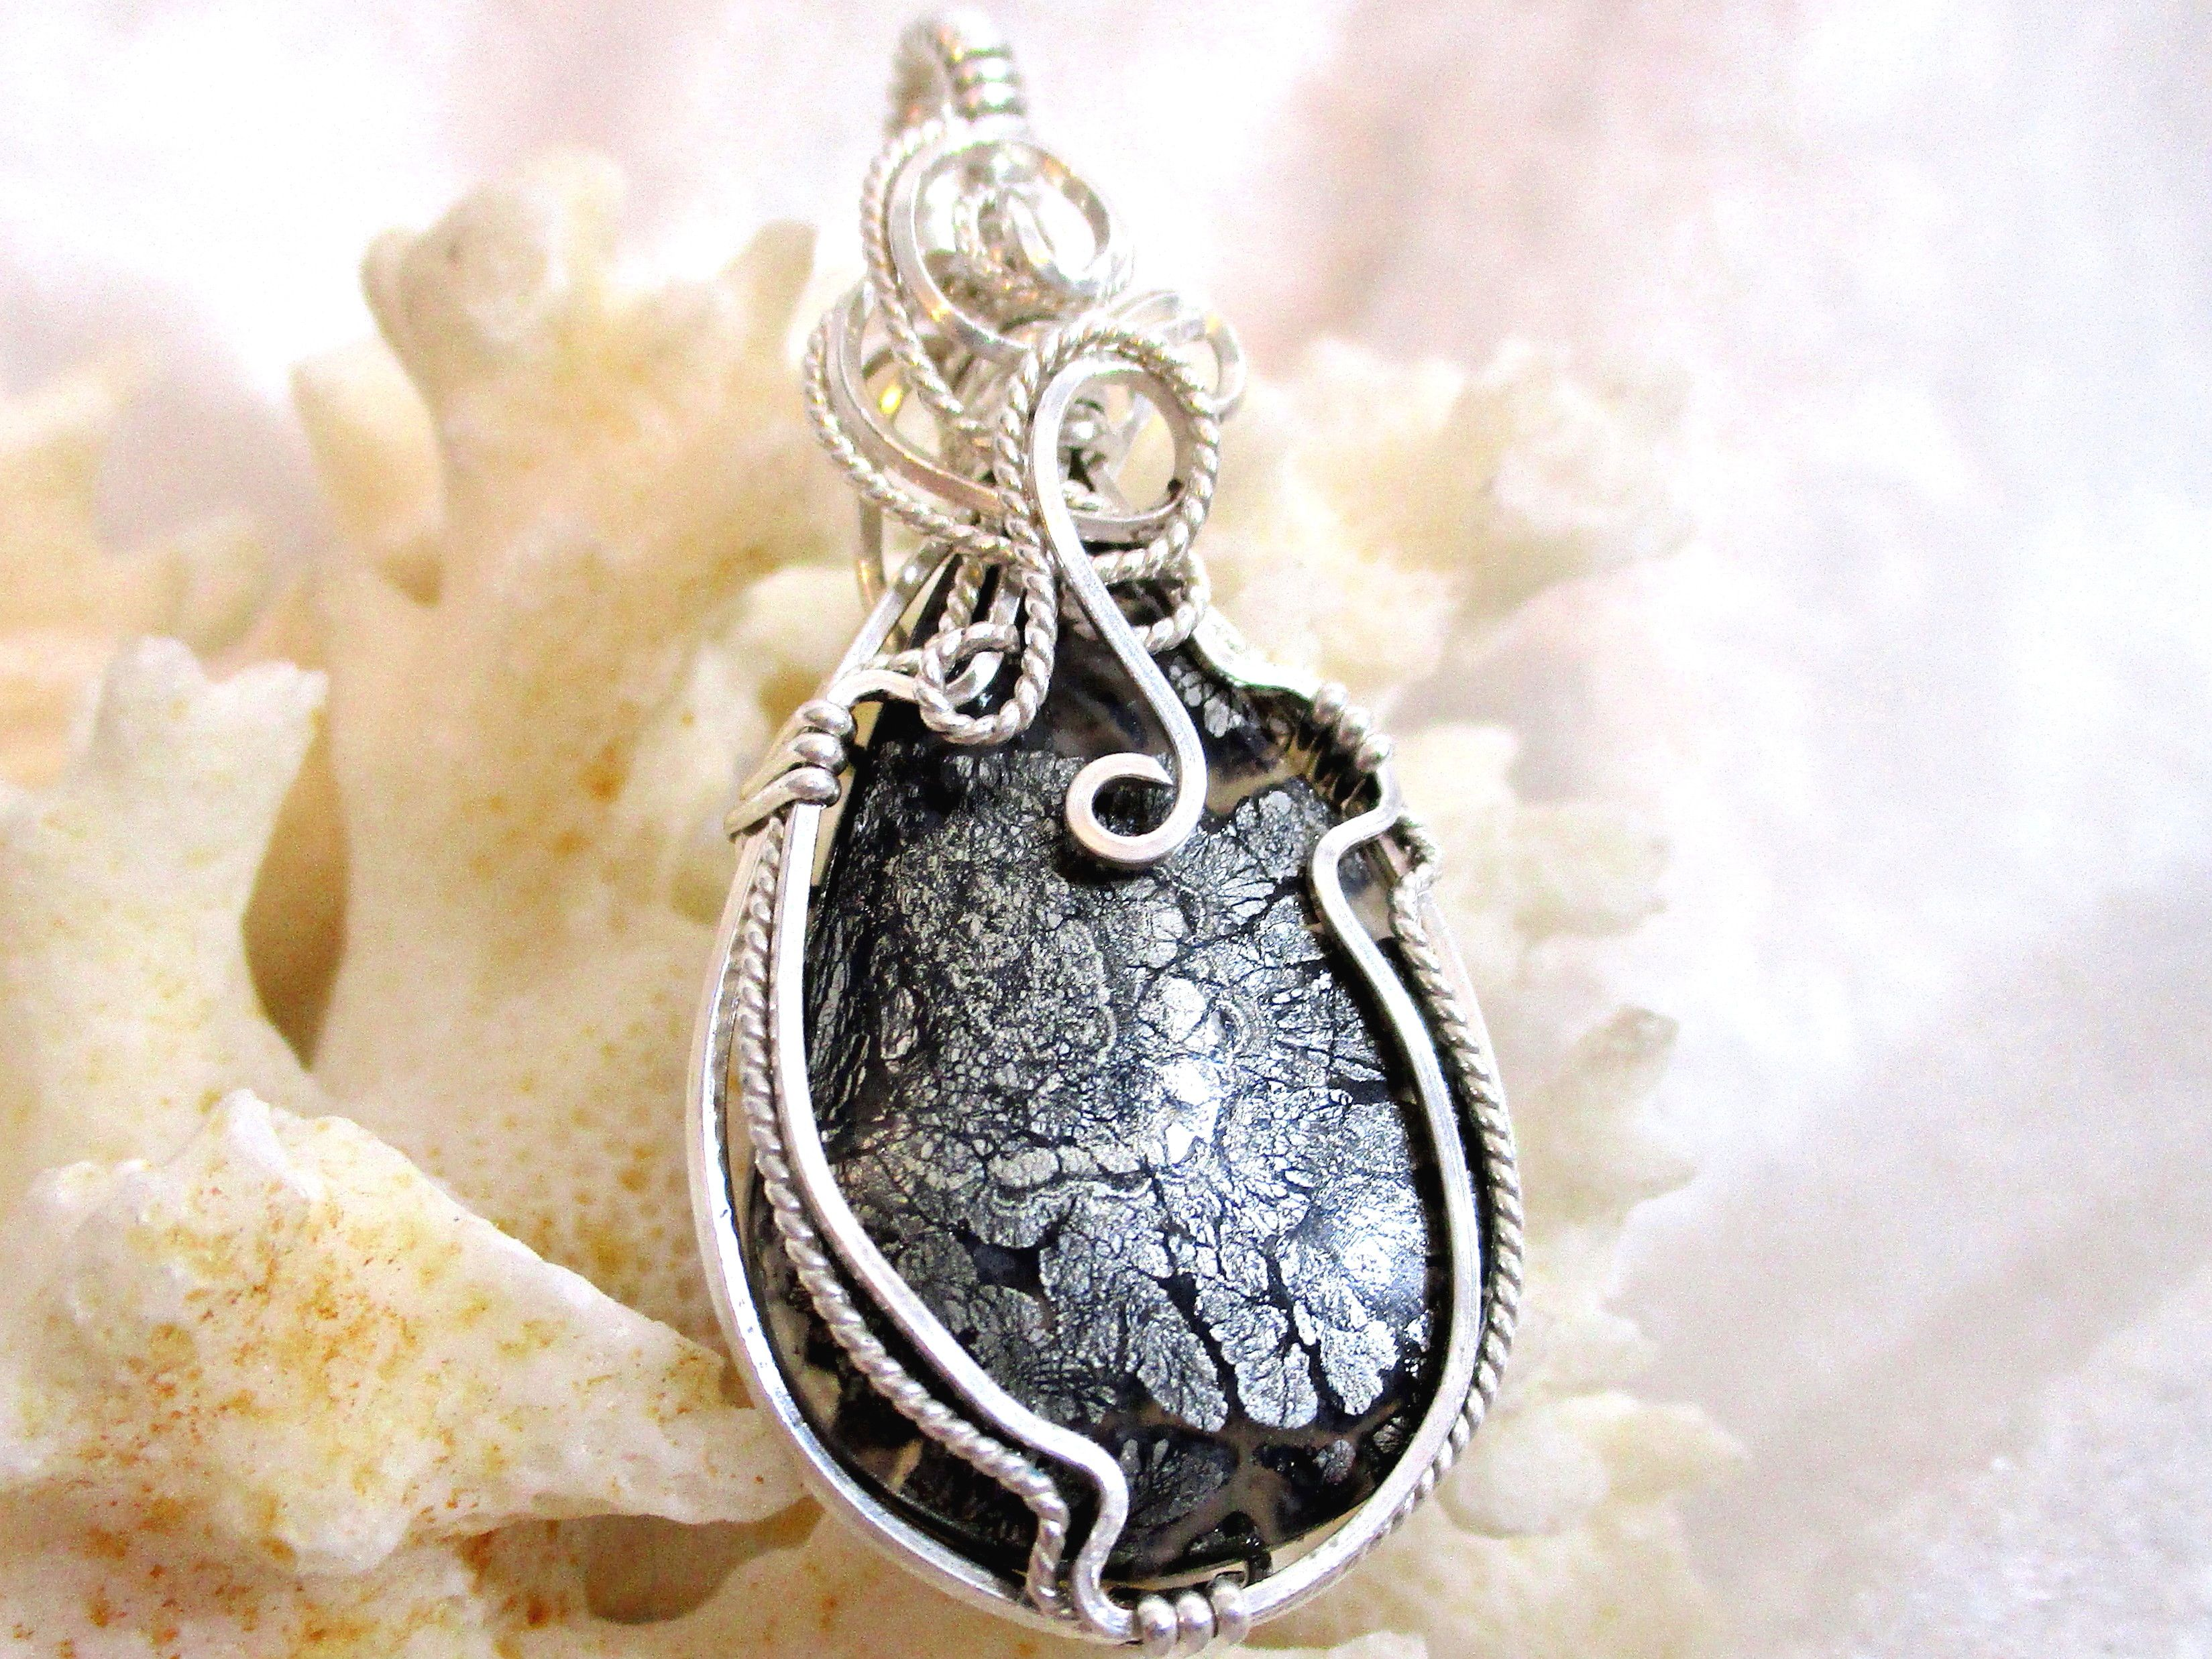 White Shell Pendant Solid Sterling Silver 935 Wire Wrapped in Argentium Anti Tarnish wire Medium Mother of Pearl Pendant